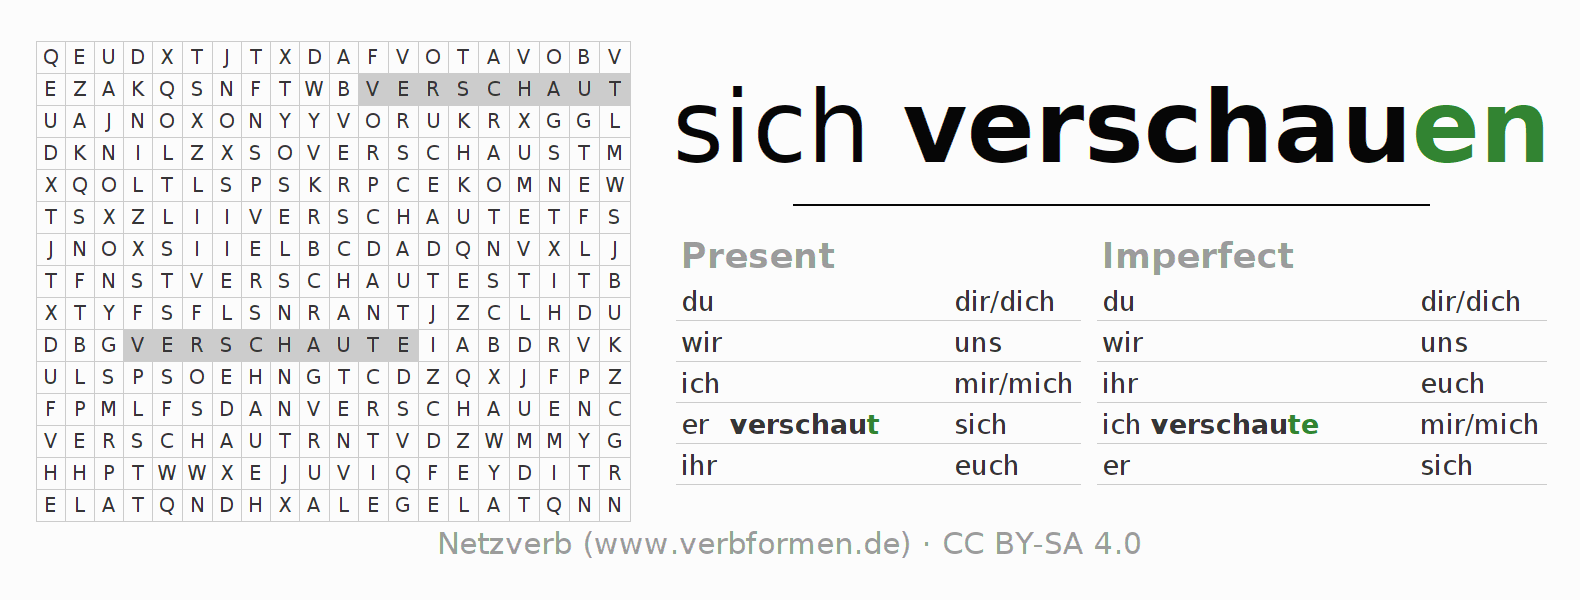 Word search puzzle for the conjugation of the verb sich verschauen